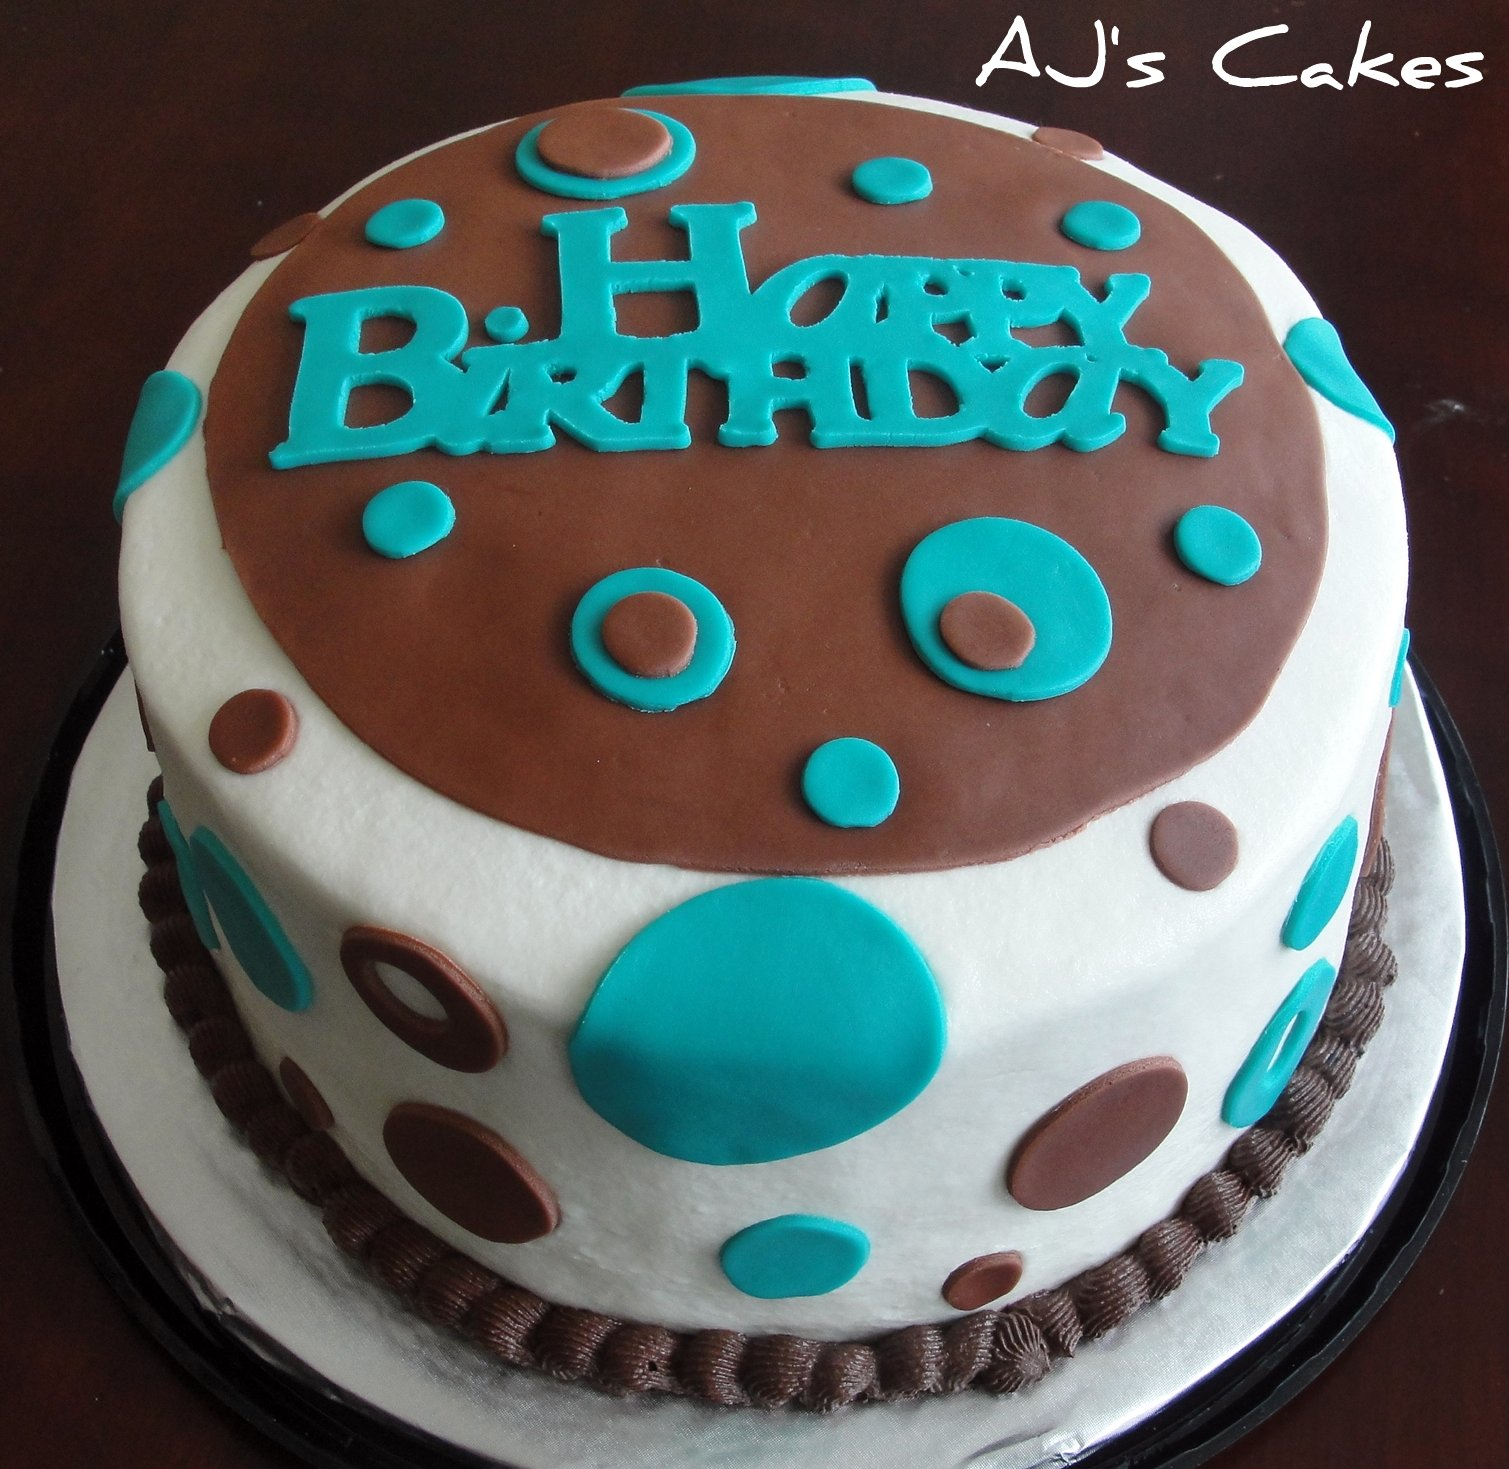 AJ s Cakes: Teal and Brown Birthday Cake